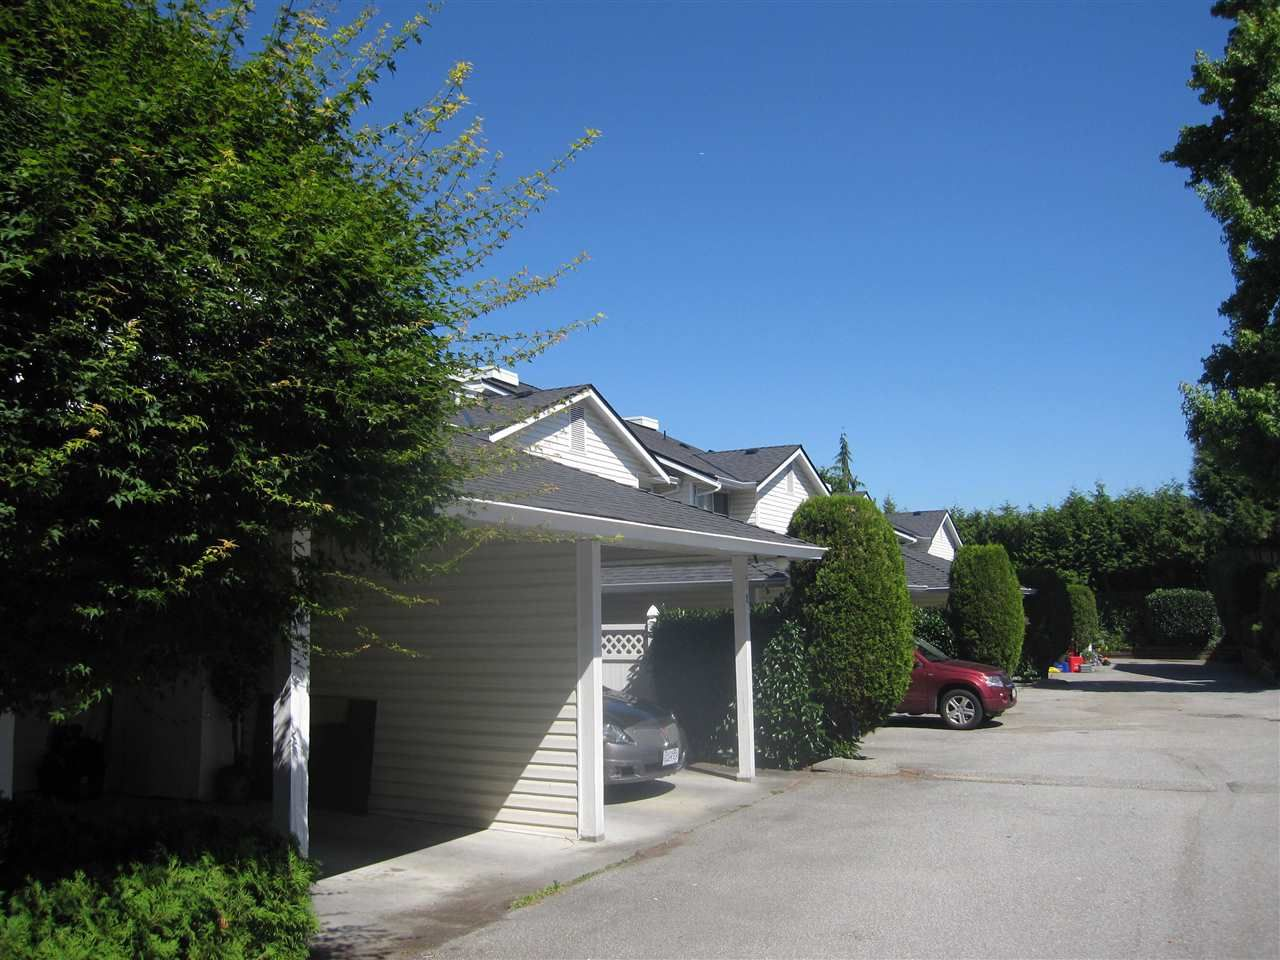 """Main Photo: 4 22411 124 Avenue in Maple Ridge: East Central Townhouse for sale in """"CREEKSIDE VILLAGE"""" : MLS®# R2287329"""